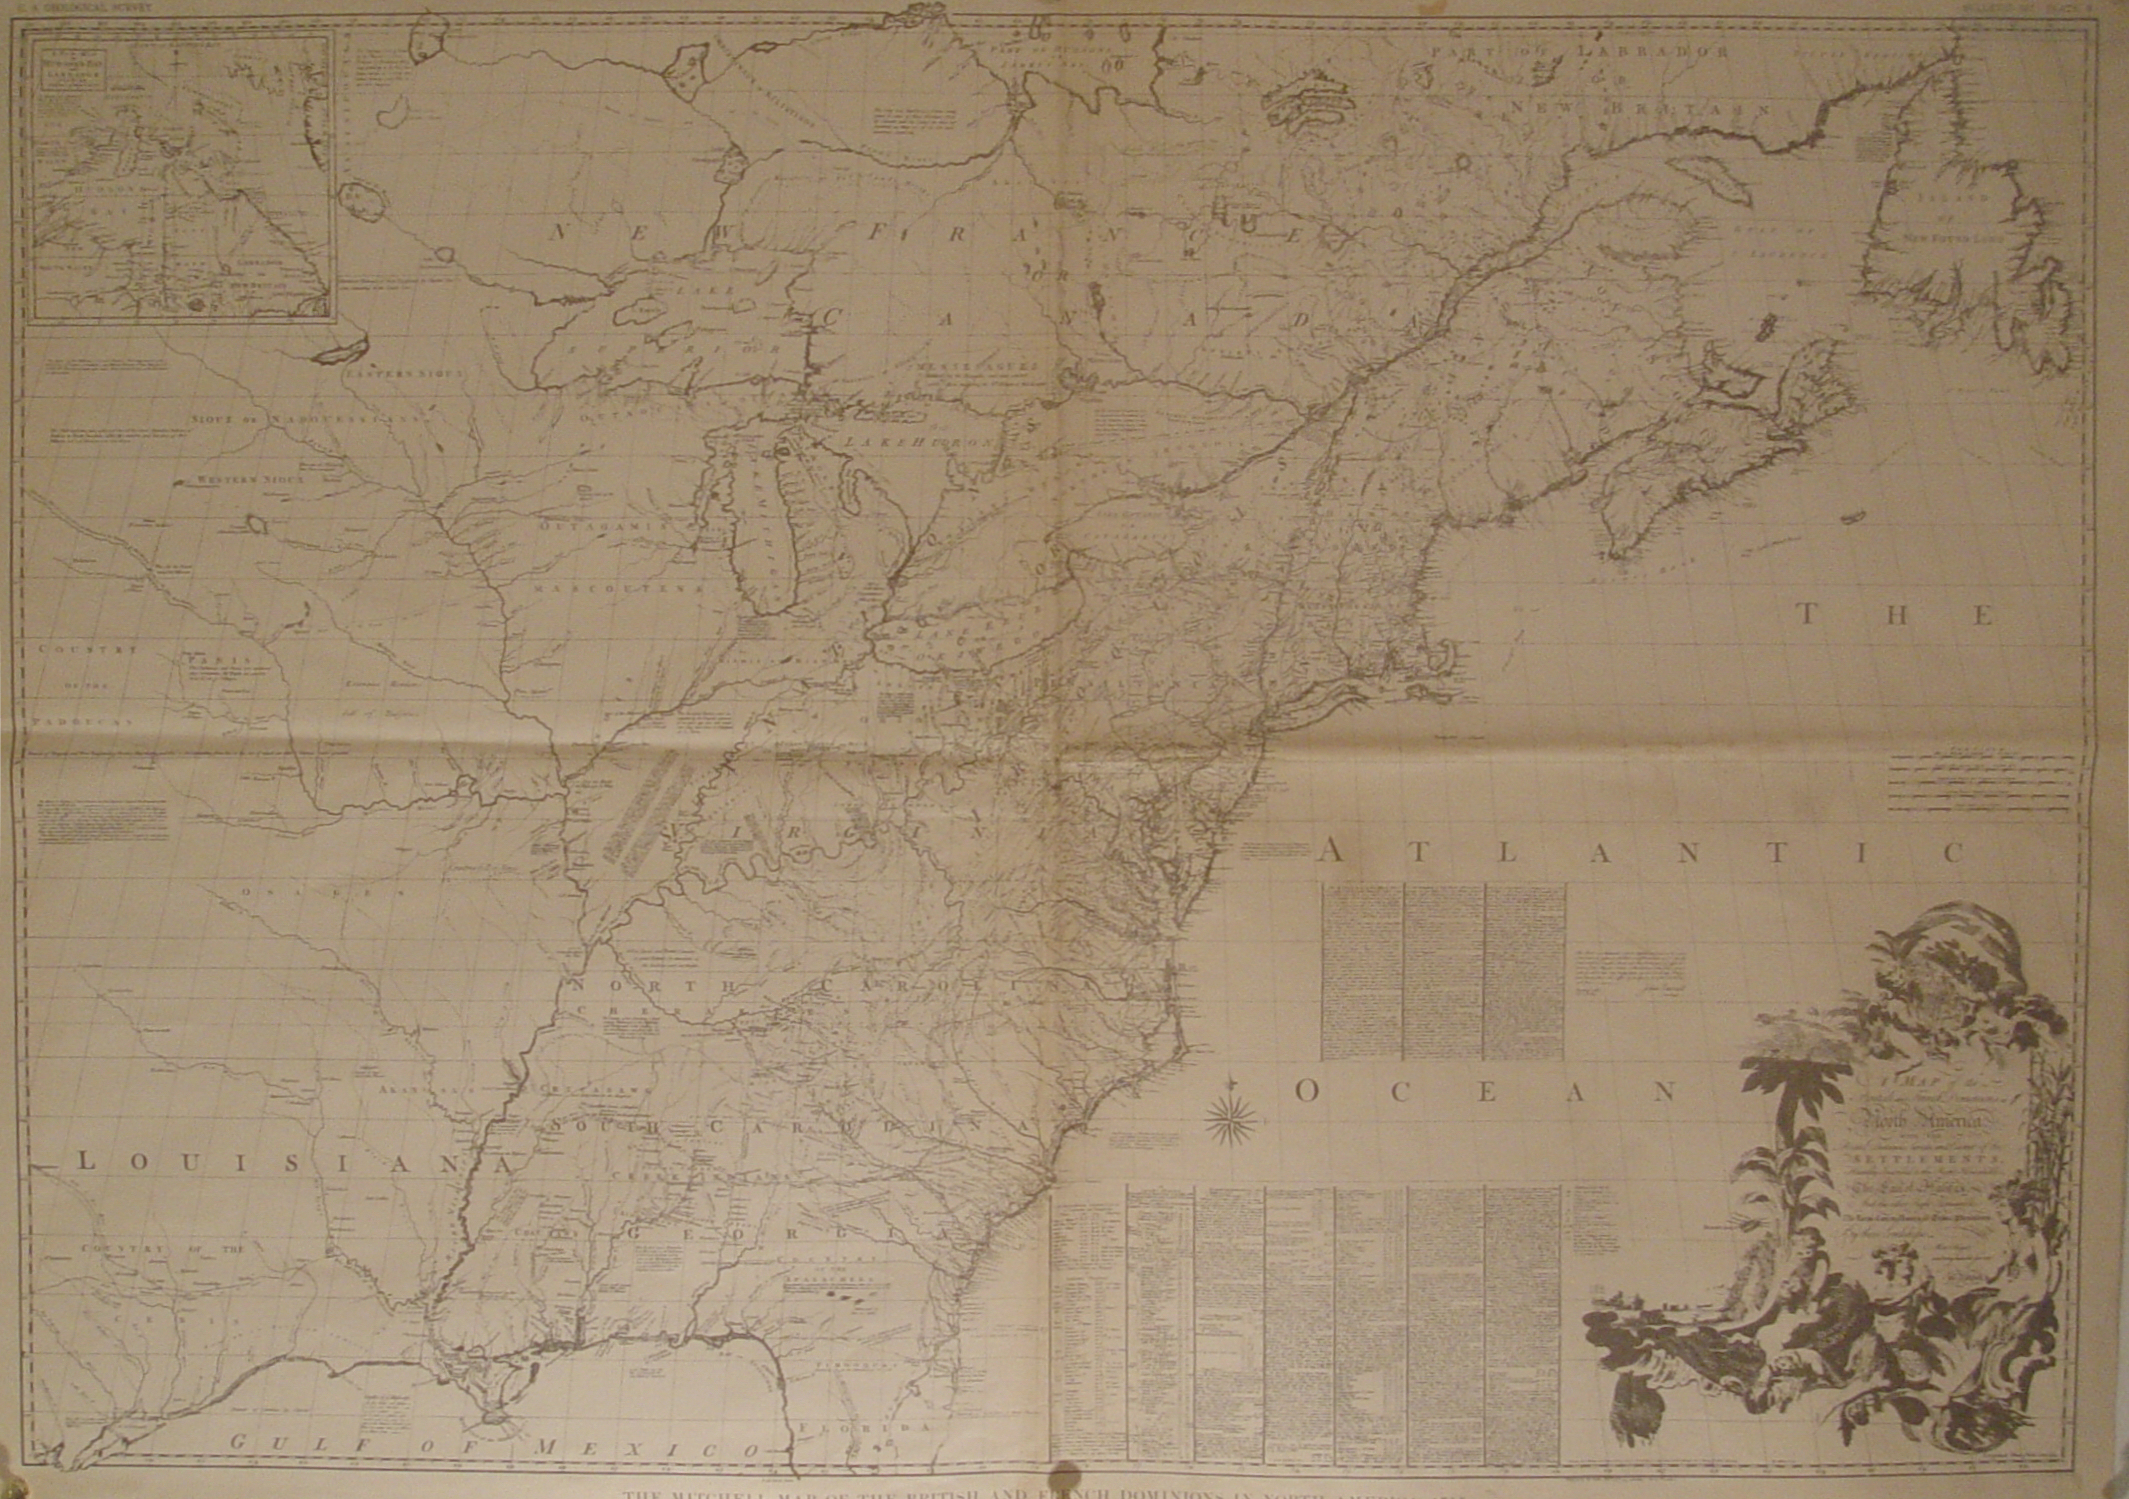 1890 Reproduction Of The 1755 Map 4 4 Mb With Detail Concerning Indians Villages And Trails Submitted By Dean Williams